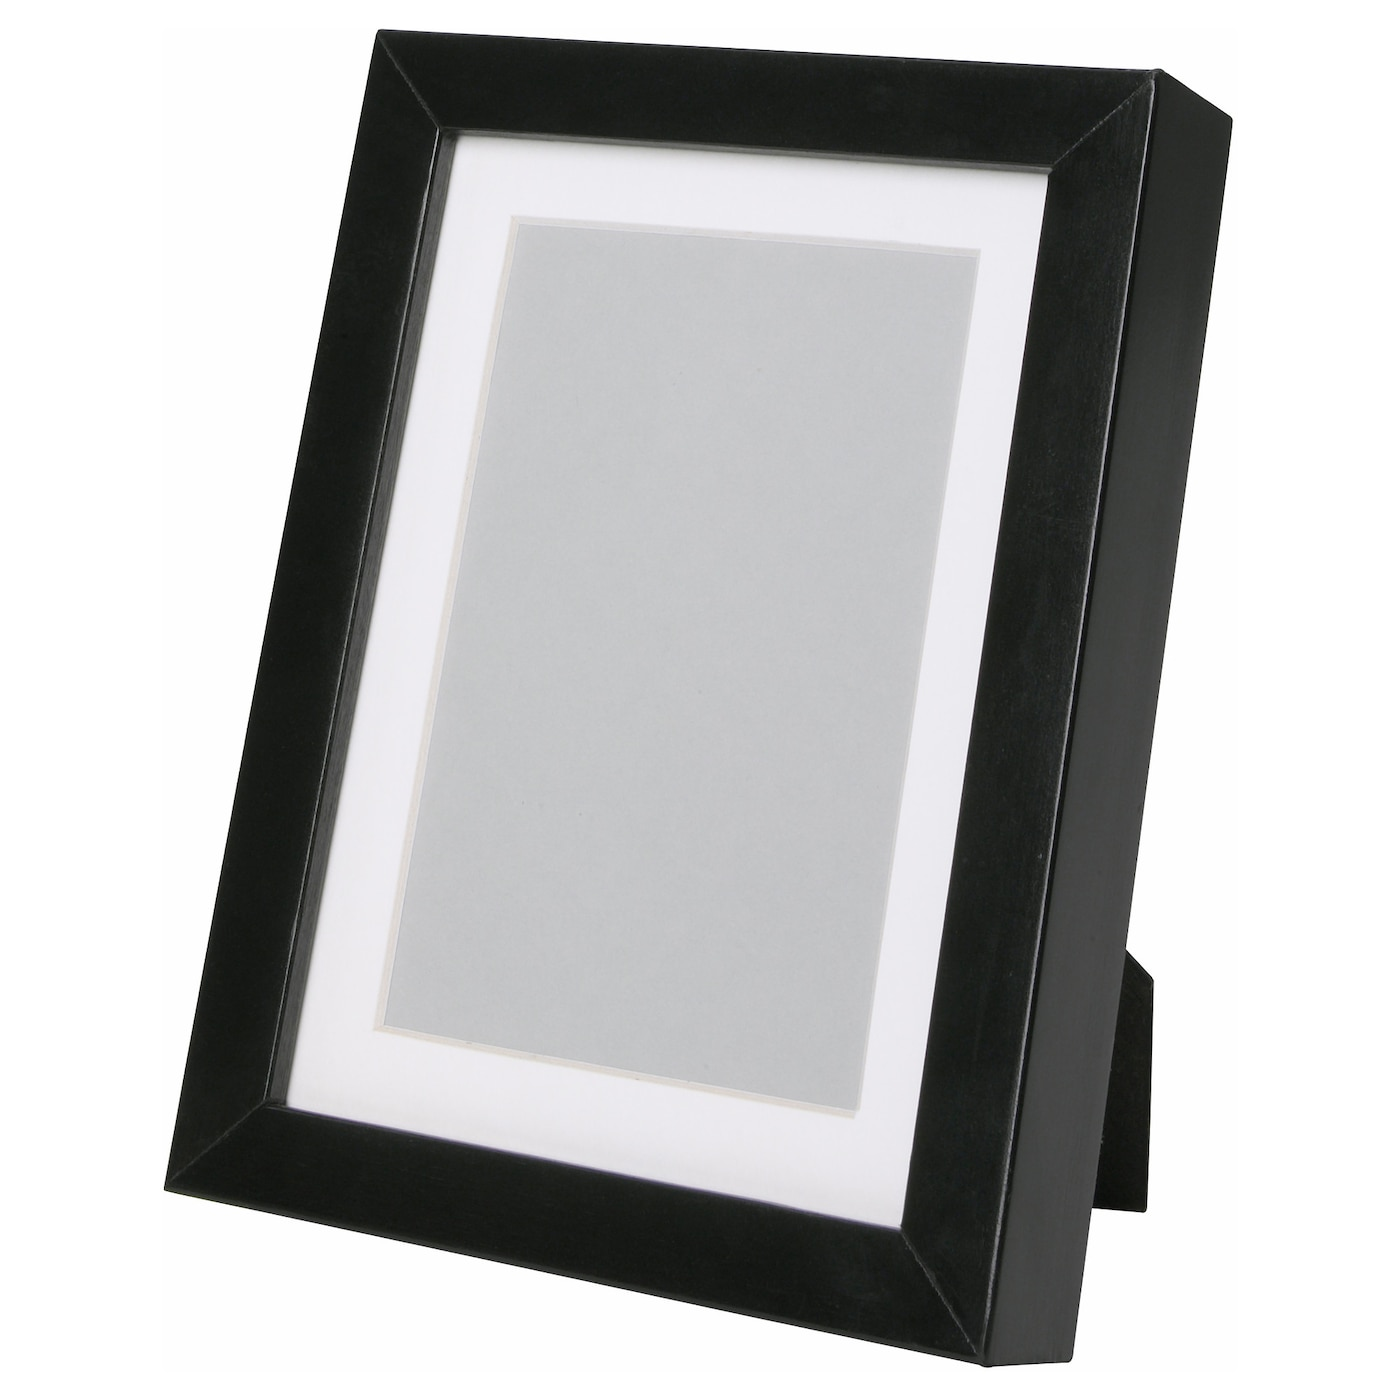 Ribba frame black 13x18 cm ikea for Ikea ribba weiay